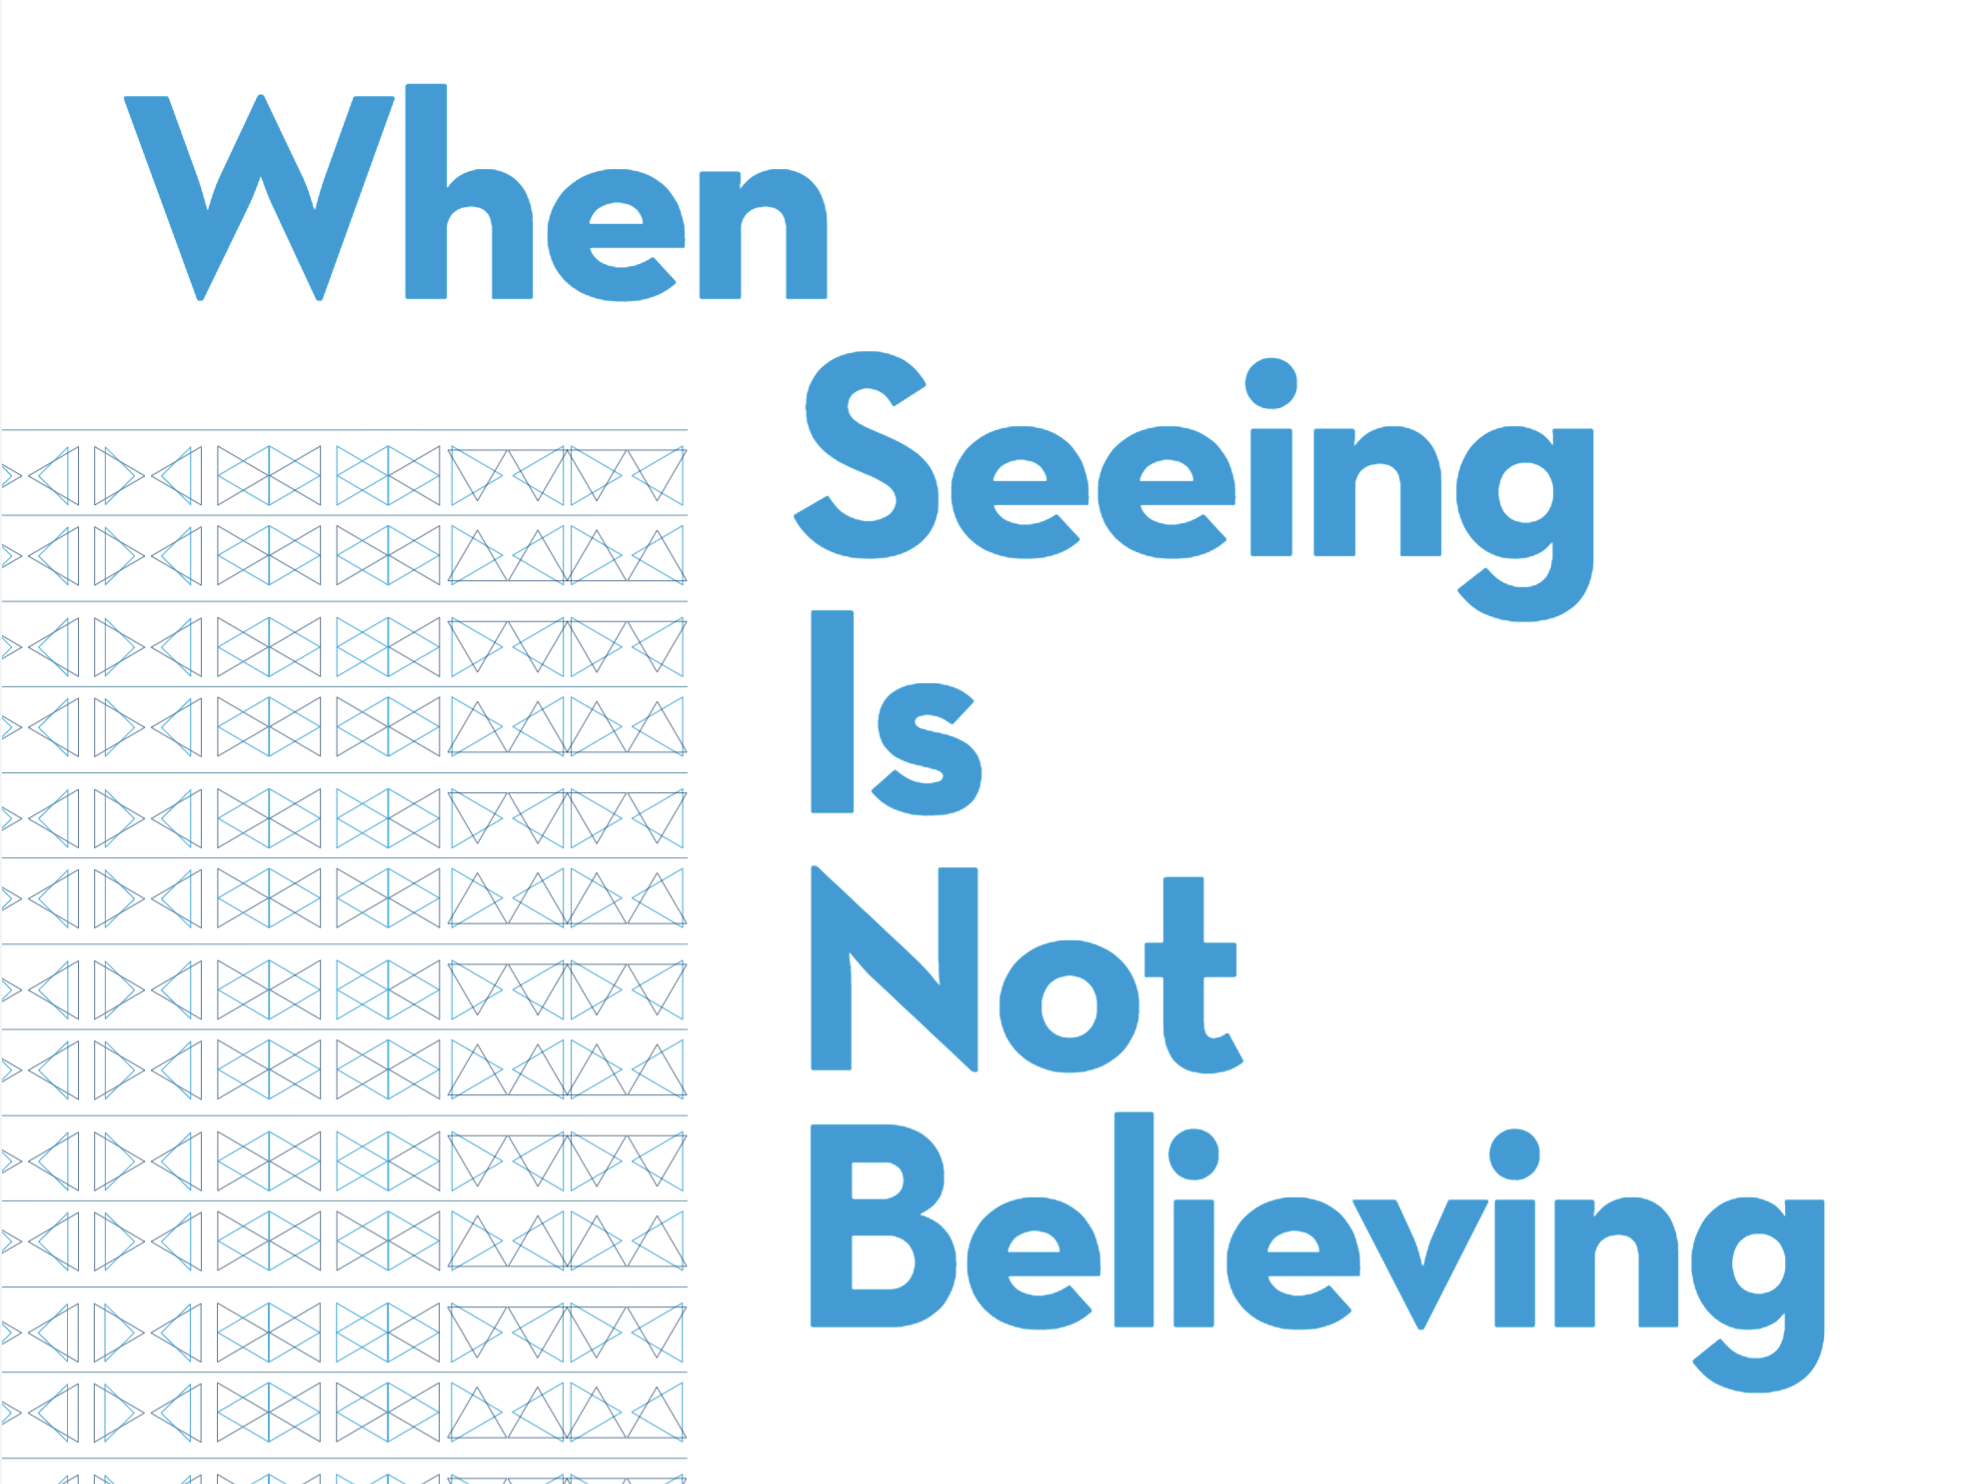 When seeing is not believing